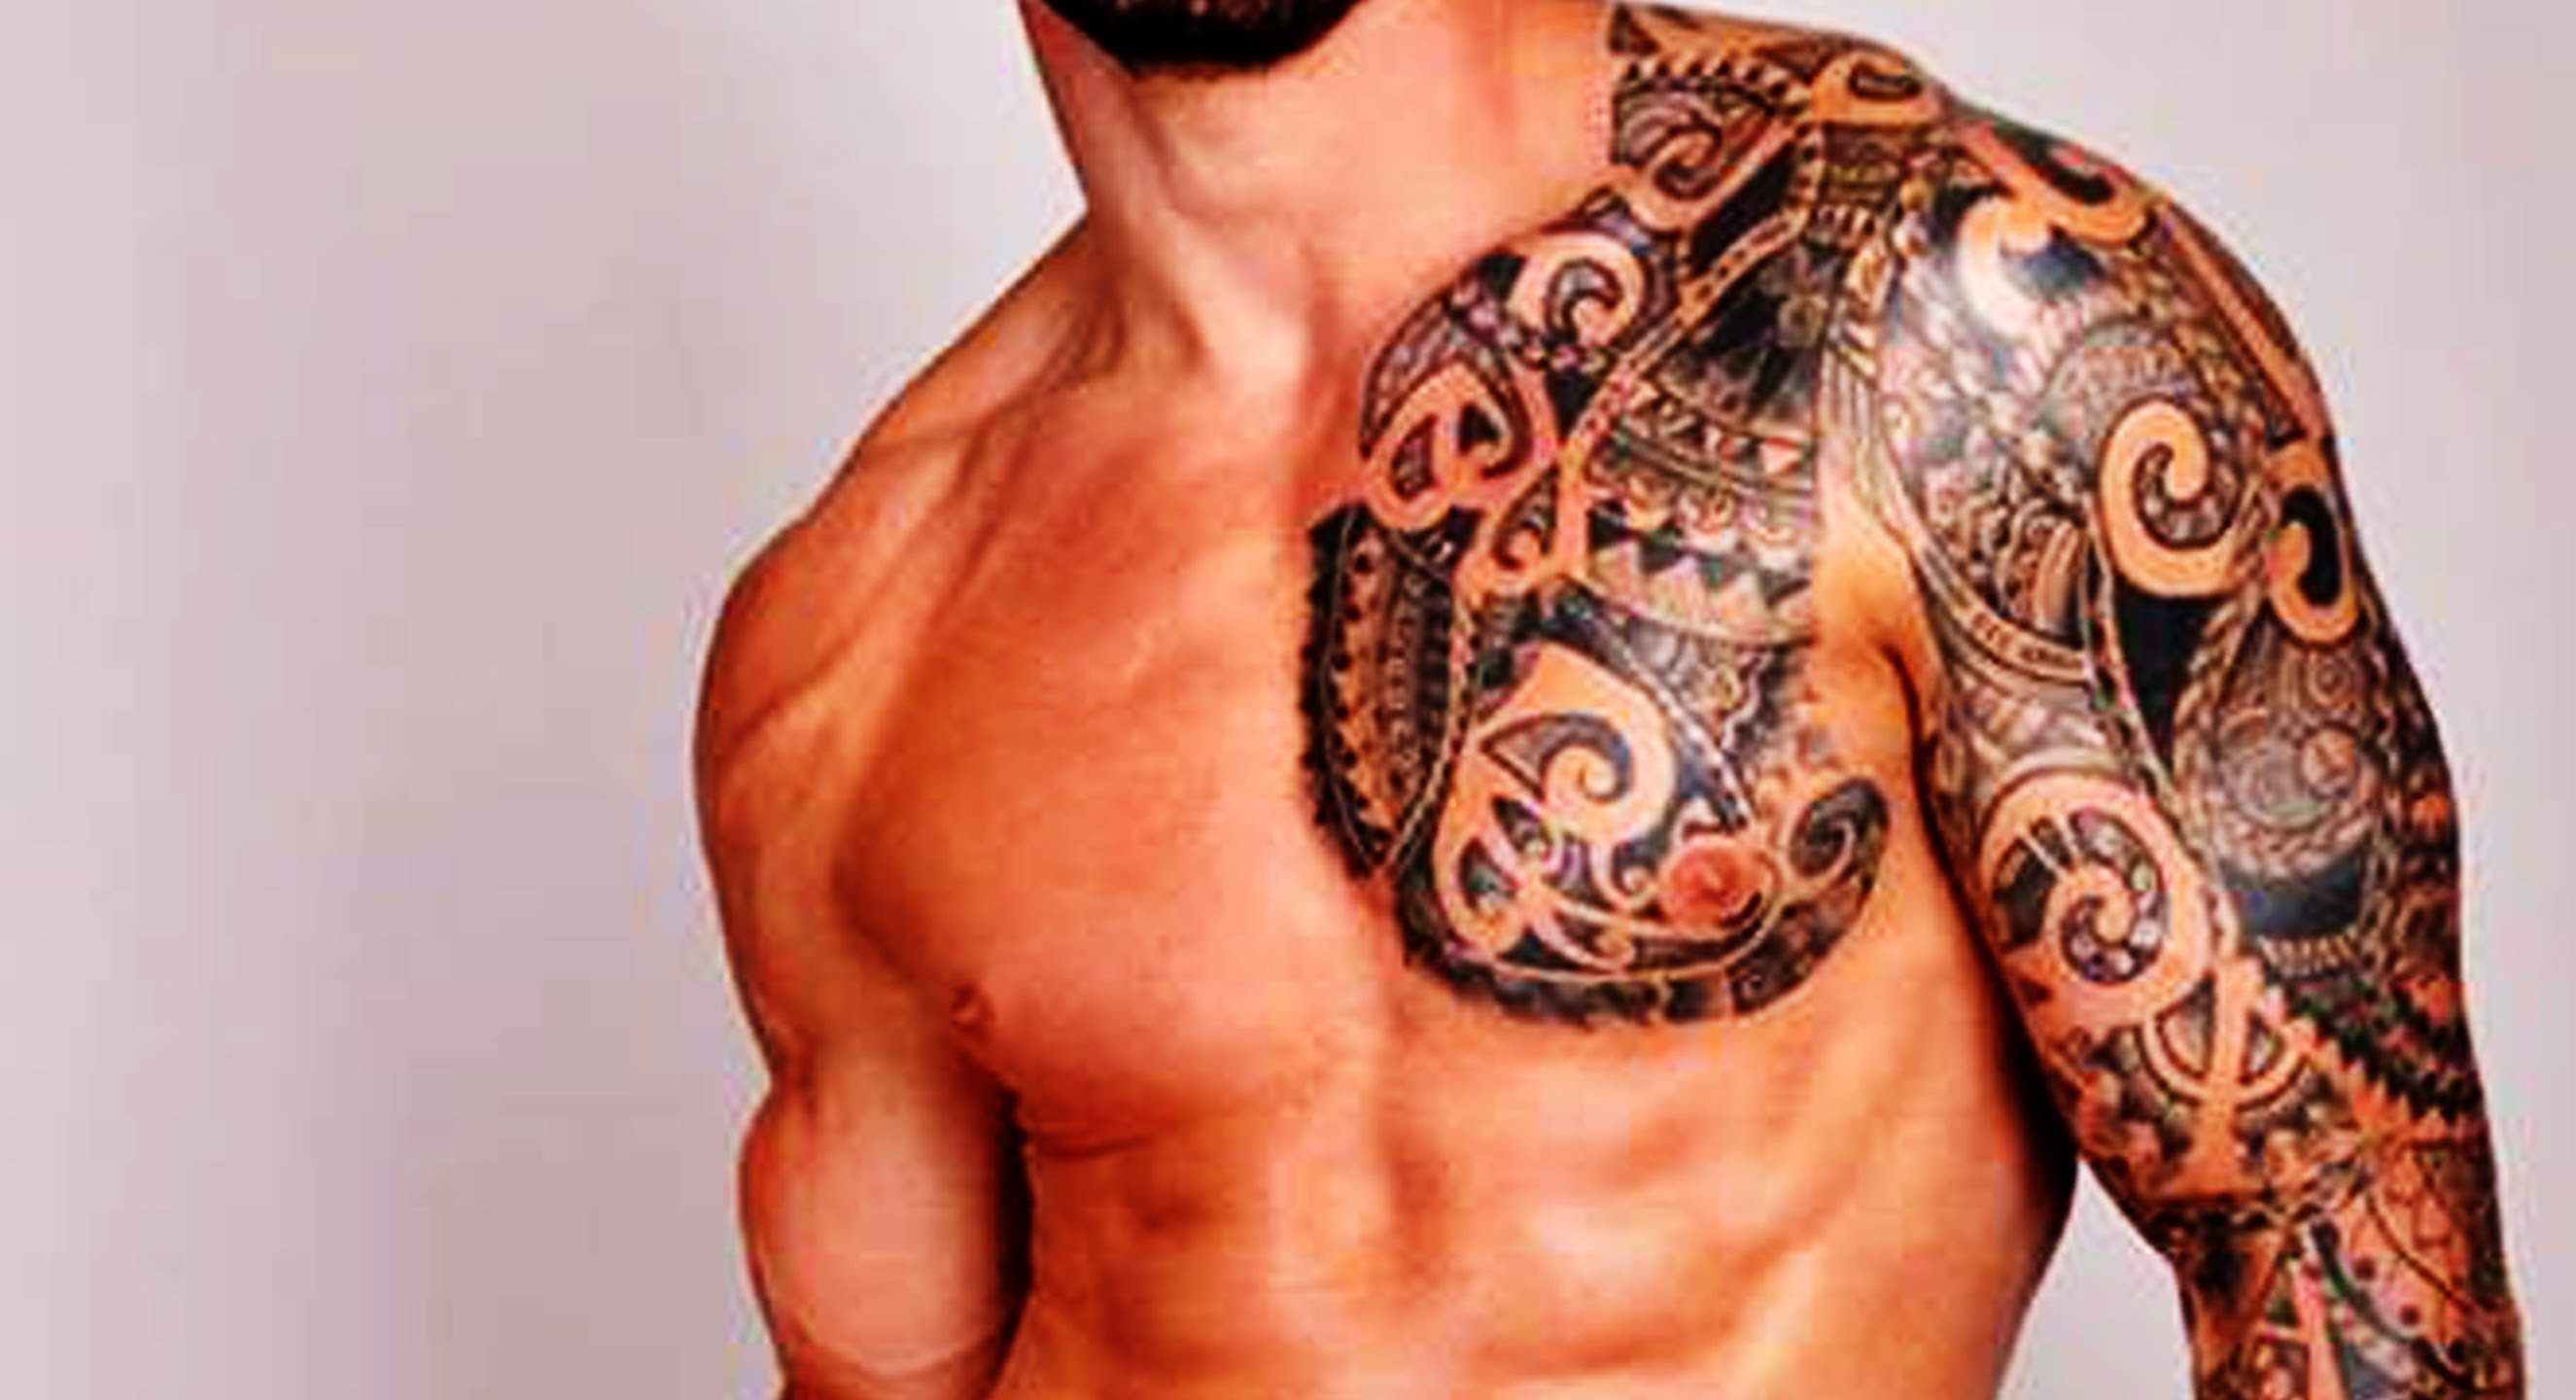 amazing tattoo ideas for men - new designs hd - youtube